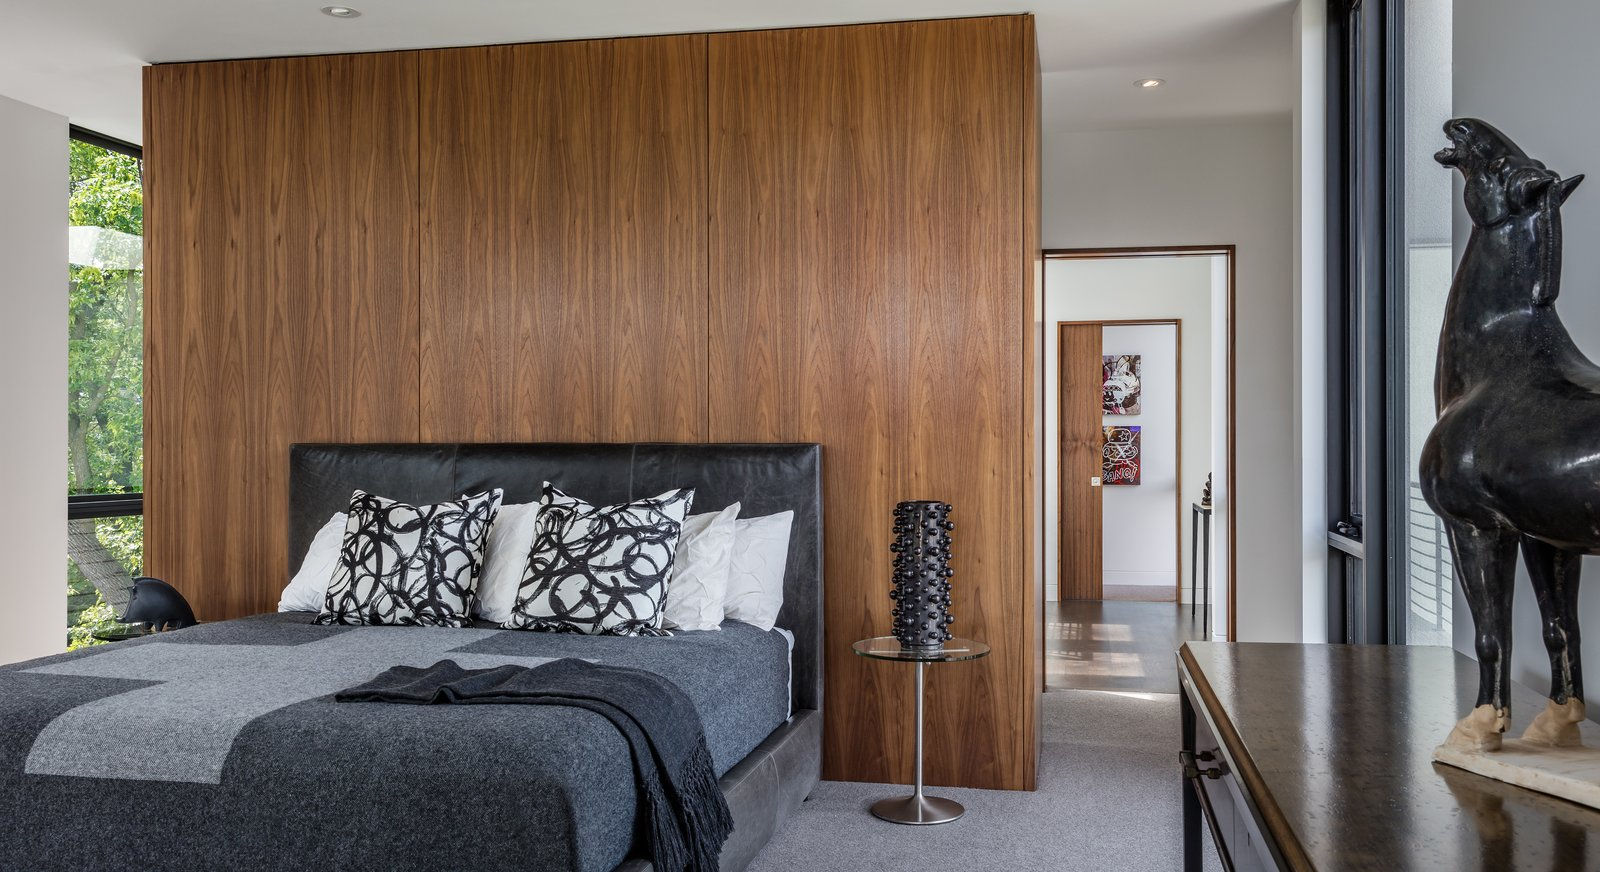 Bedroom, Storage, Bed, and Ceiling Lighting  Calhoun Pavilions Residence by Peterssen/Keller Architecture